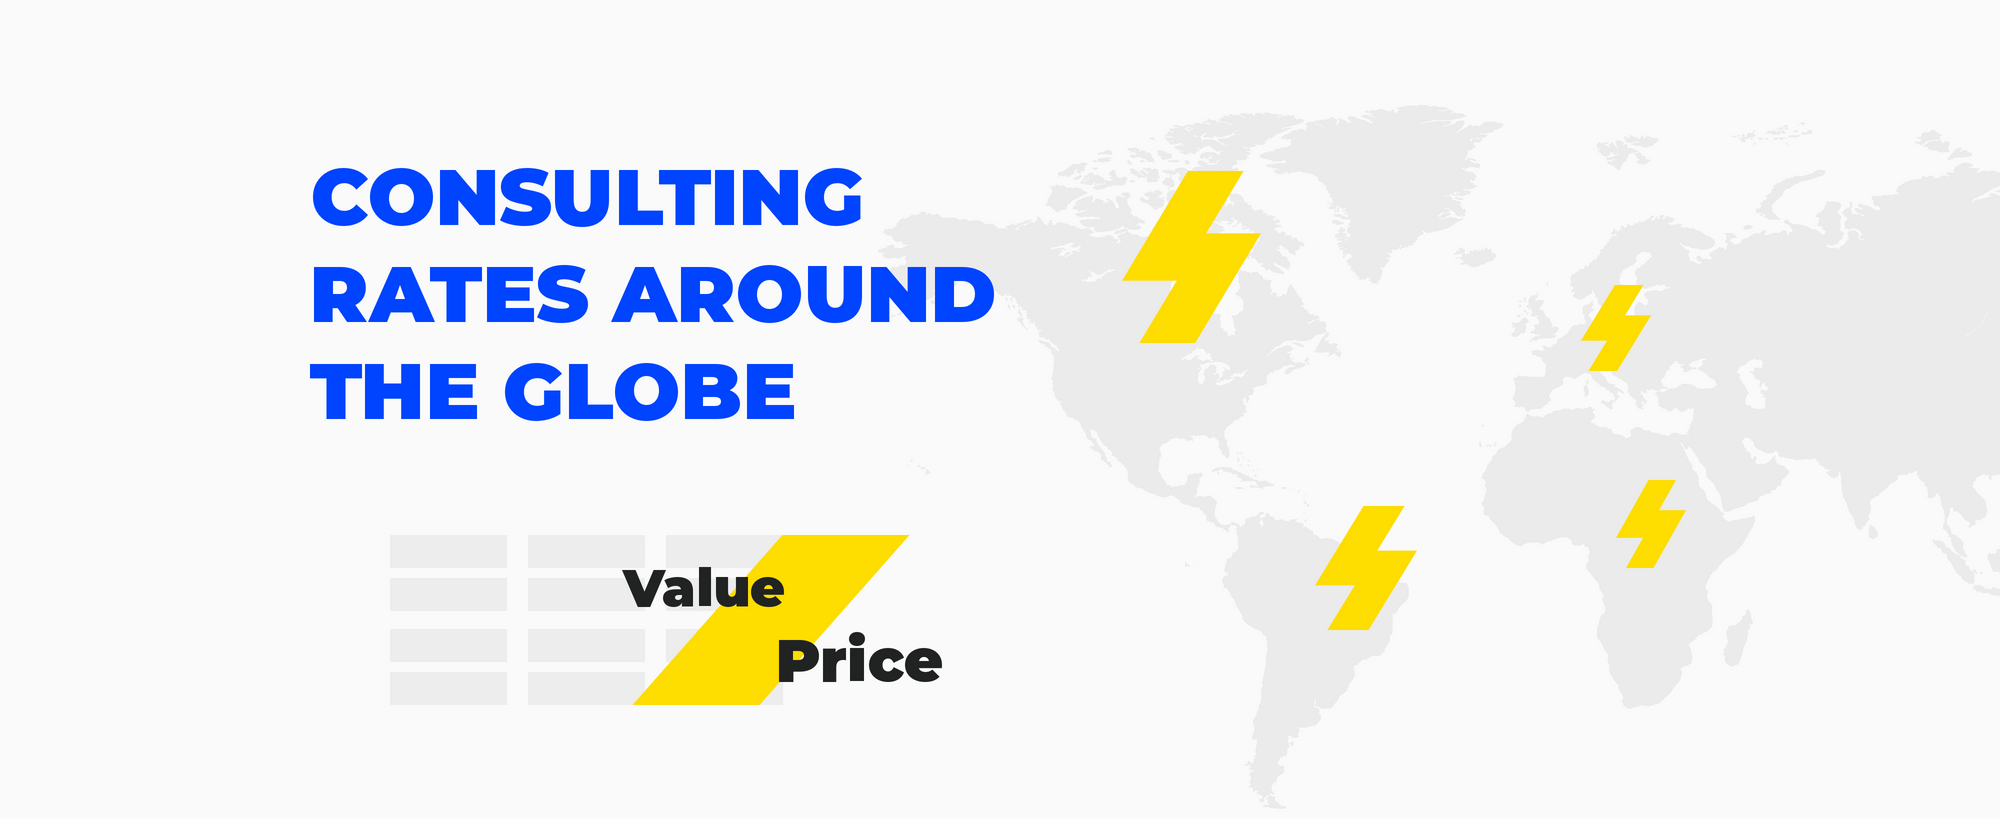 How Salesforce Consulting Rates Are Different Around The Globe: Value vs. Price